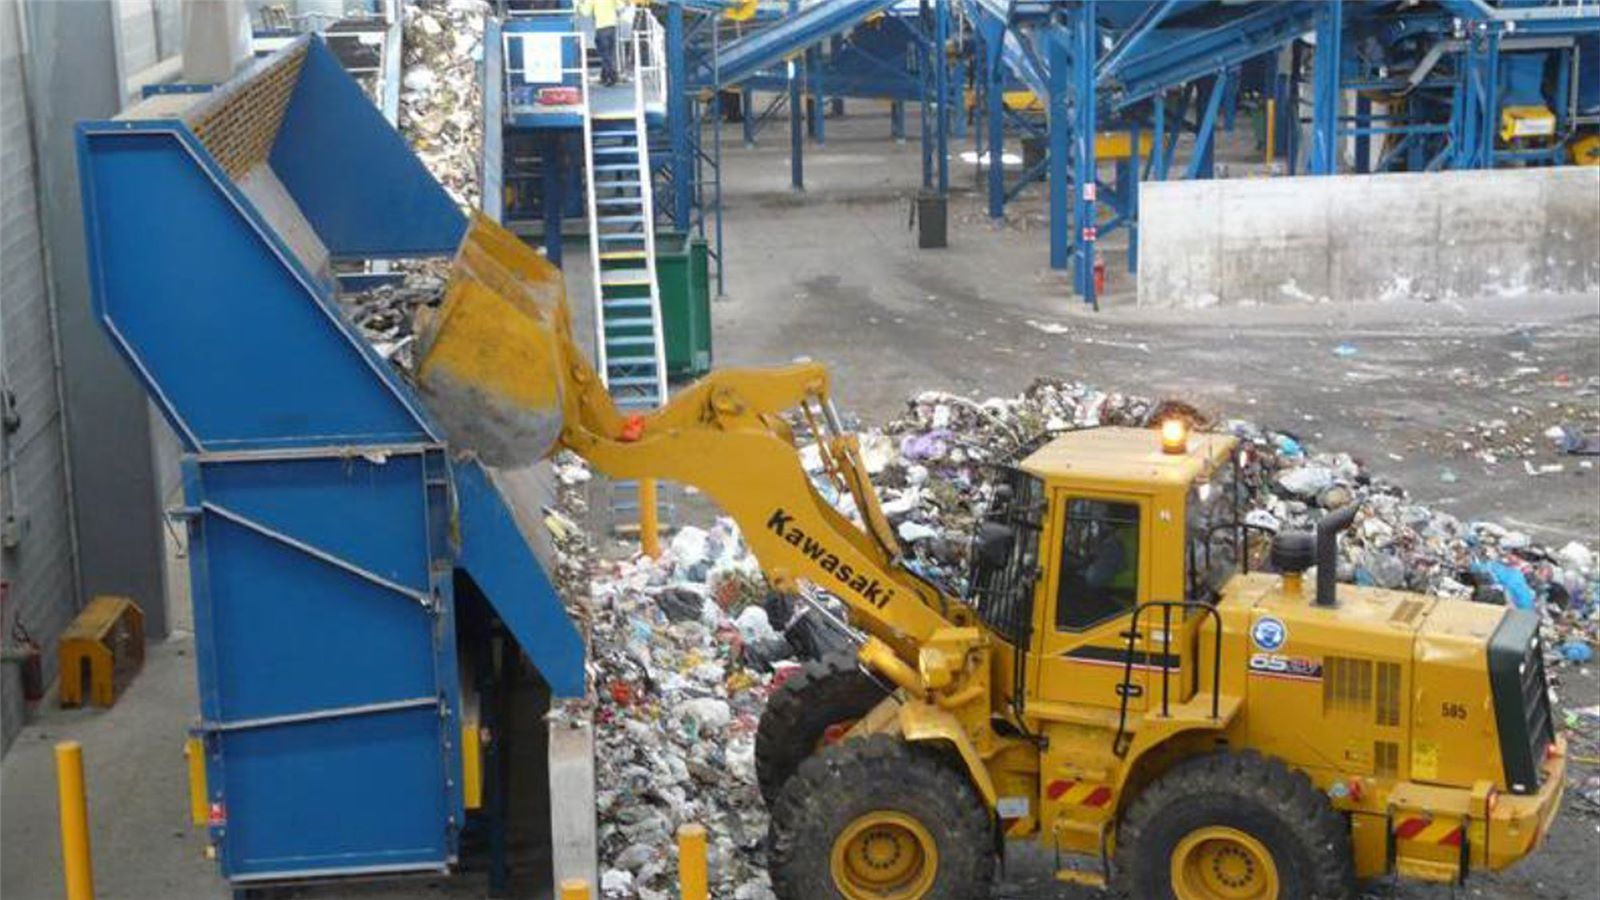 Penrith Liverpool mechanical and biological waste treatment facility